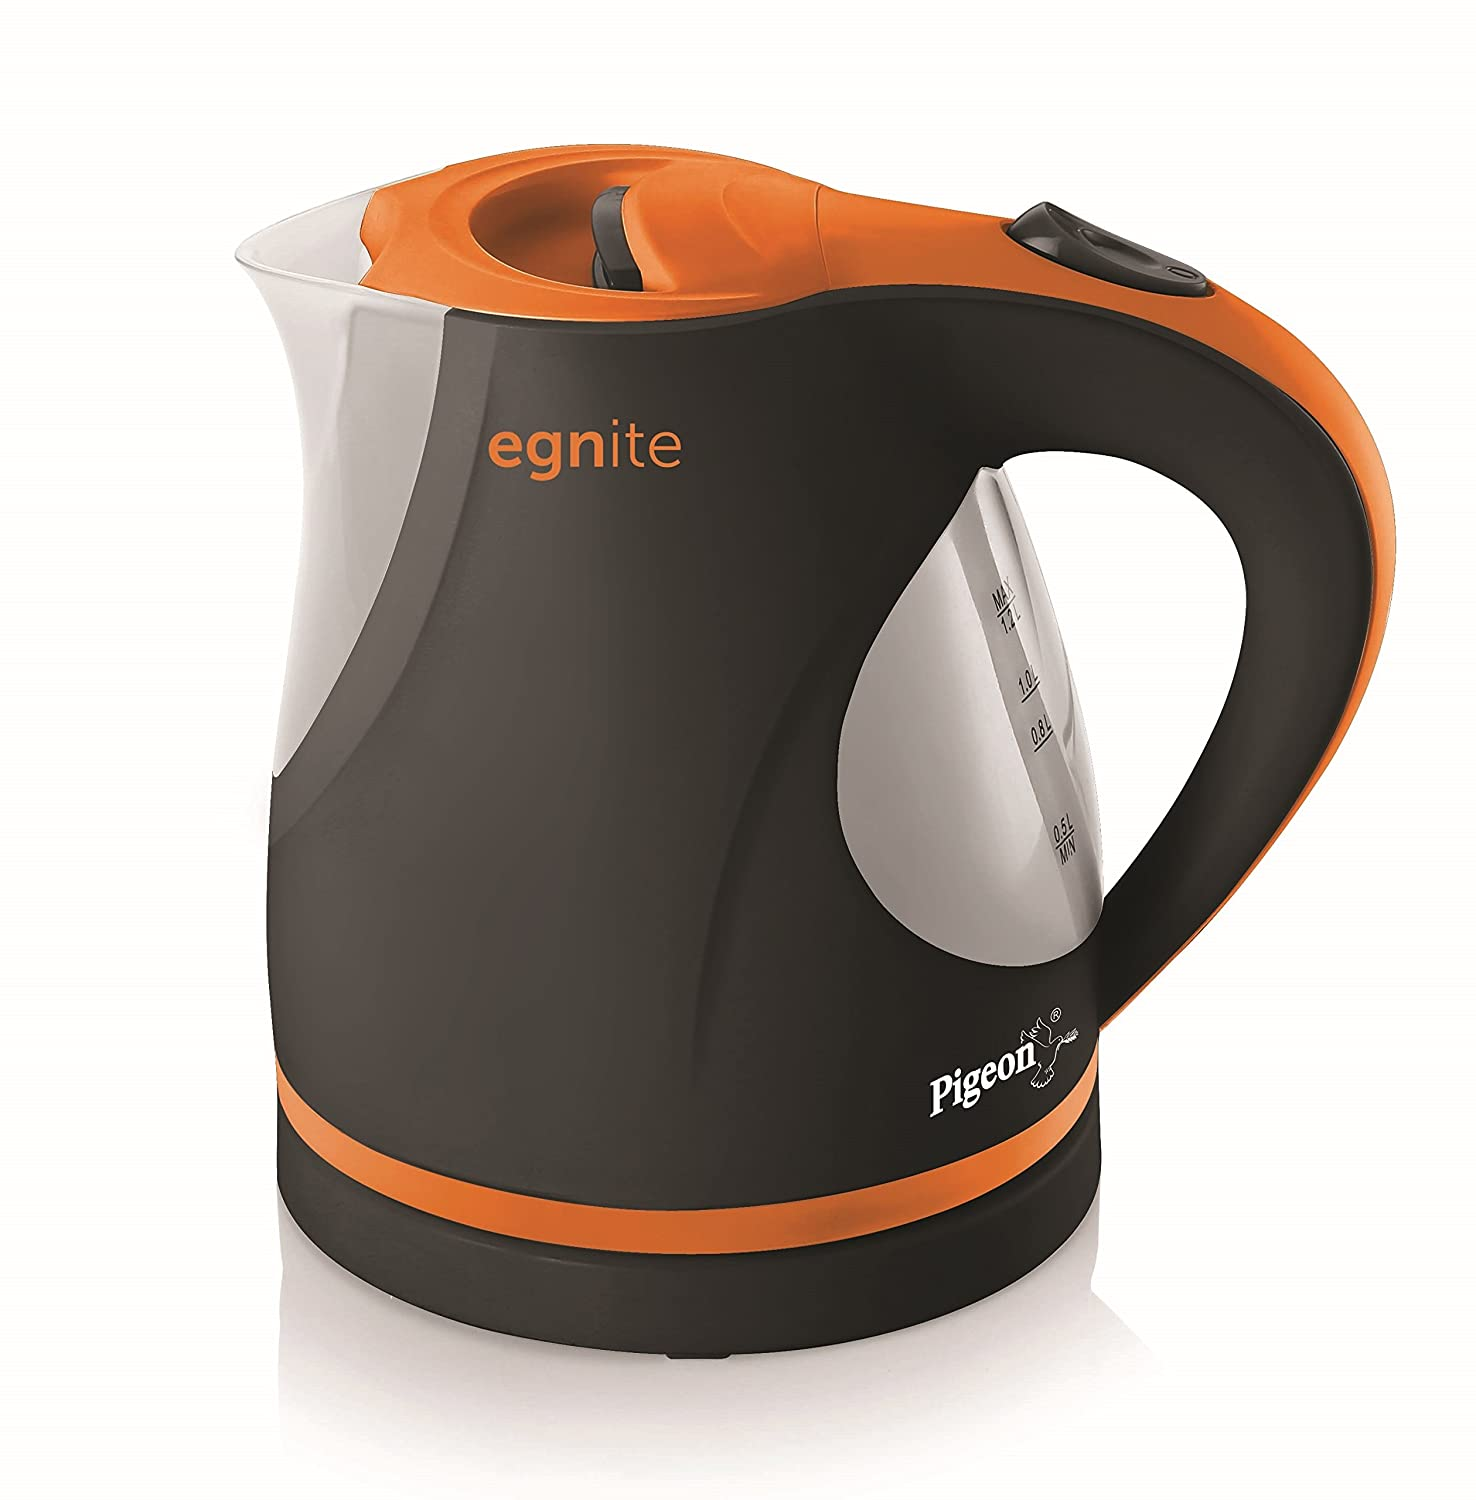 Pigeon Egnite EG1200 1.2-Litre Electric Kettle